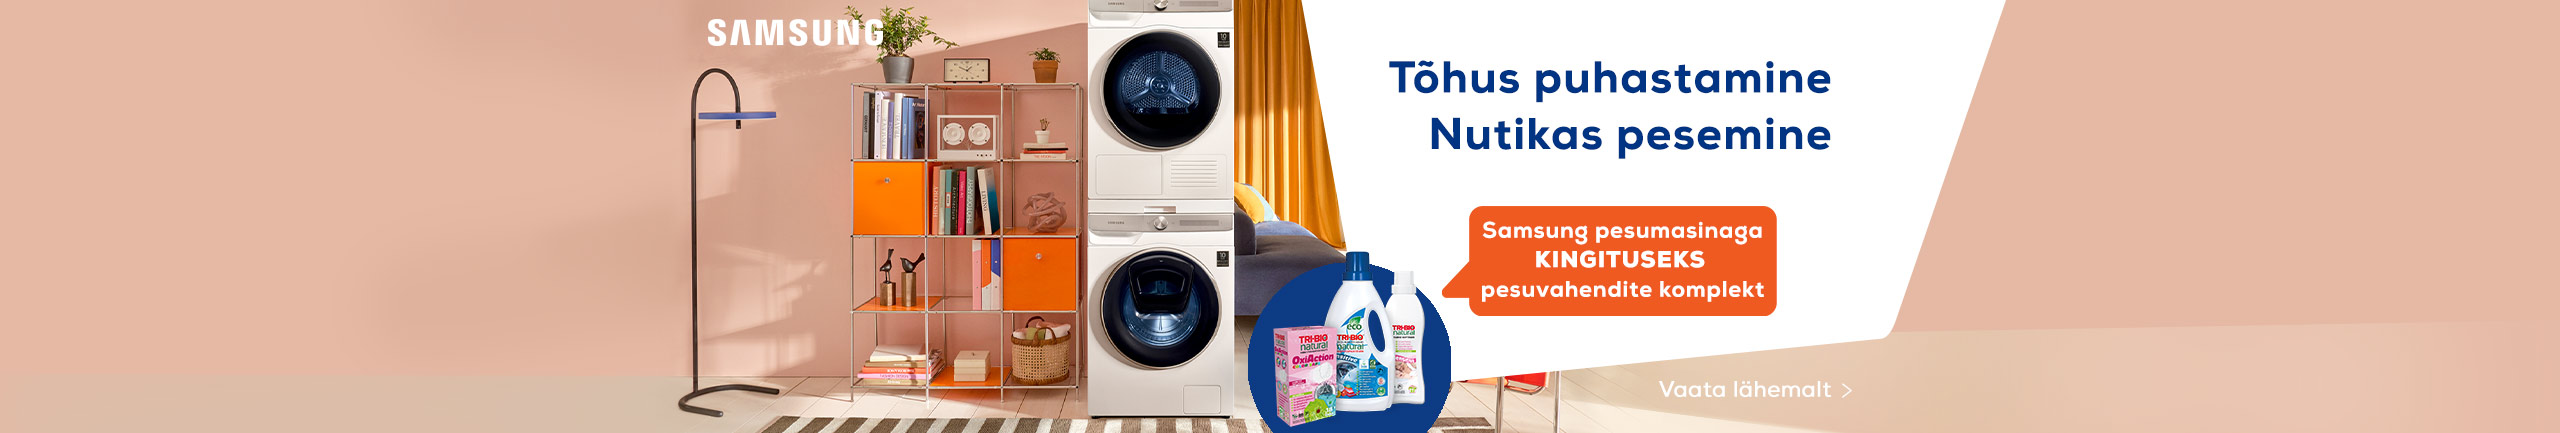 Buy Samsung washer and get a complimentary gift